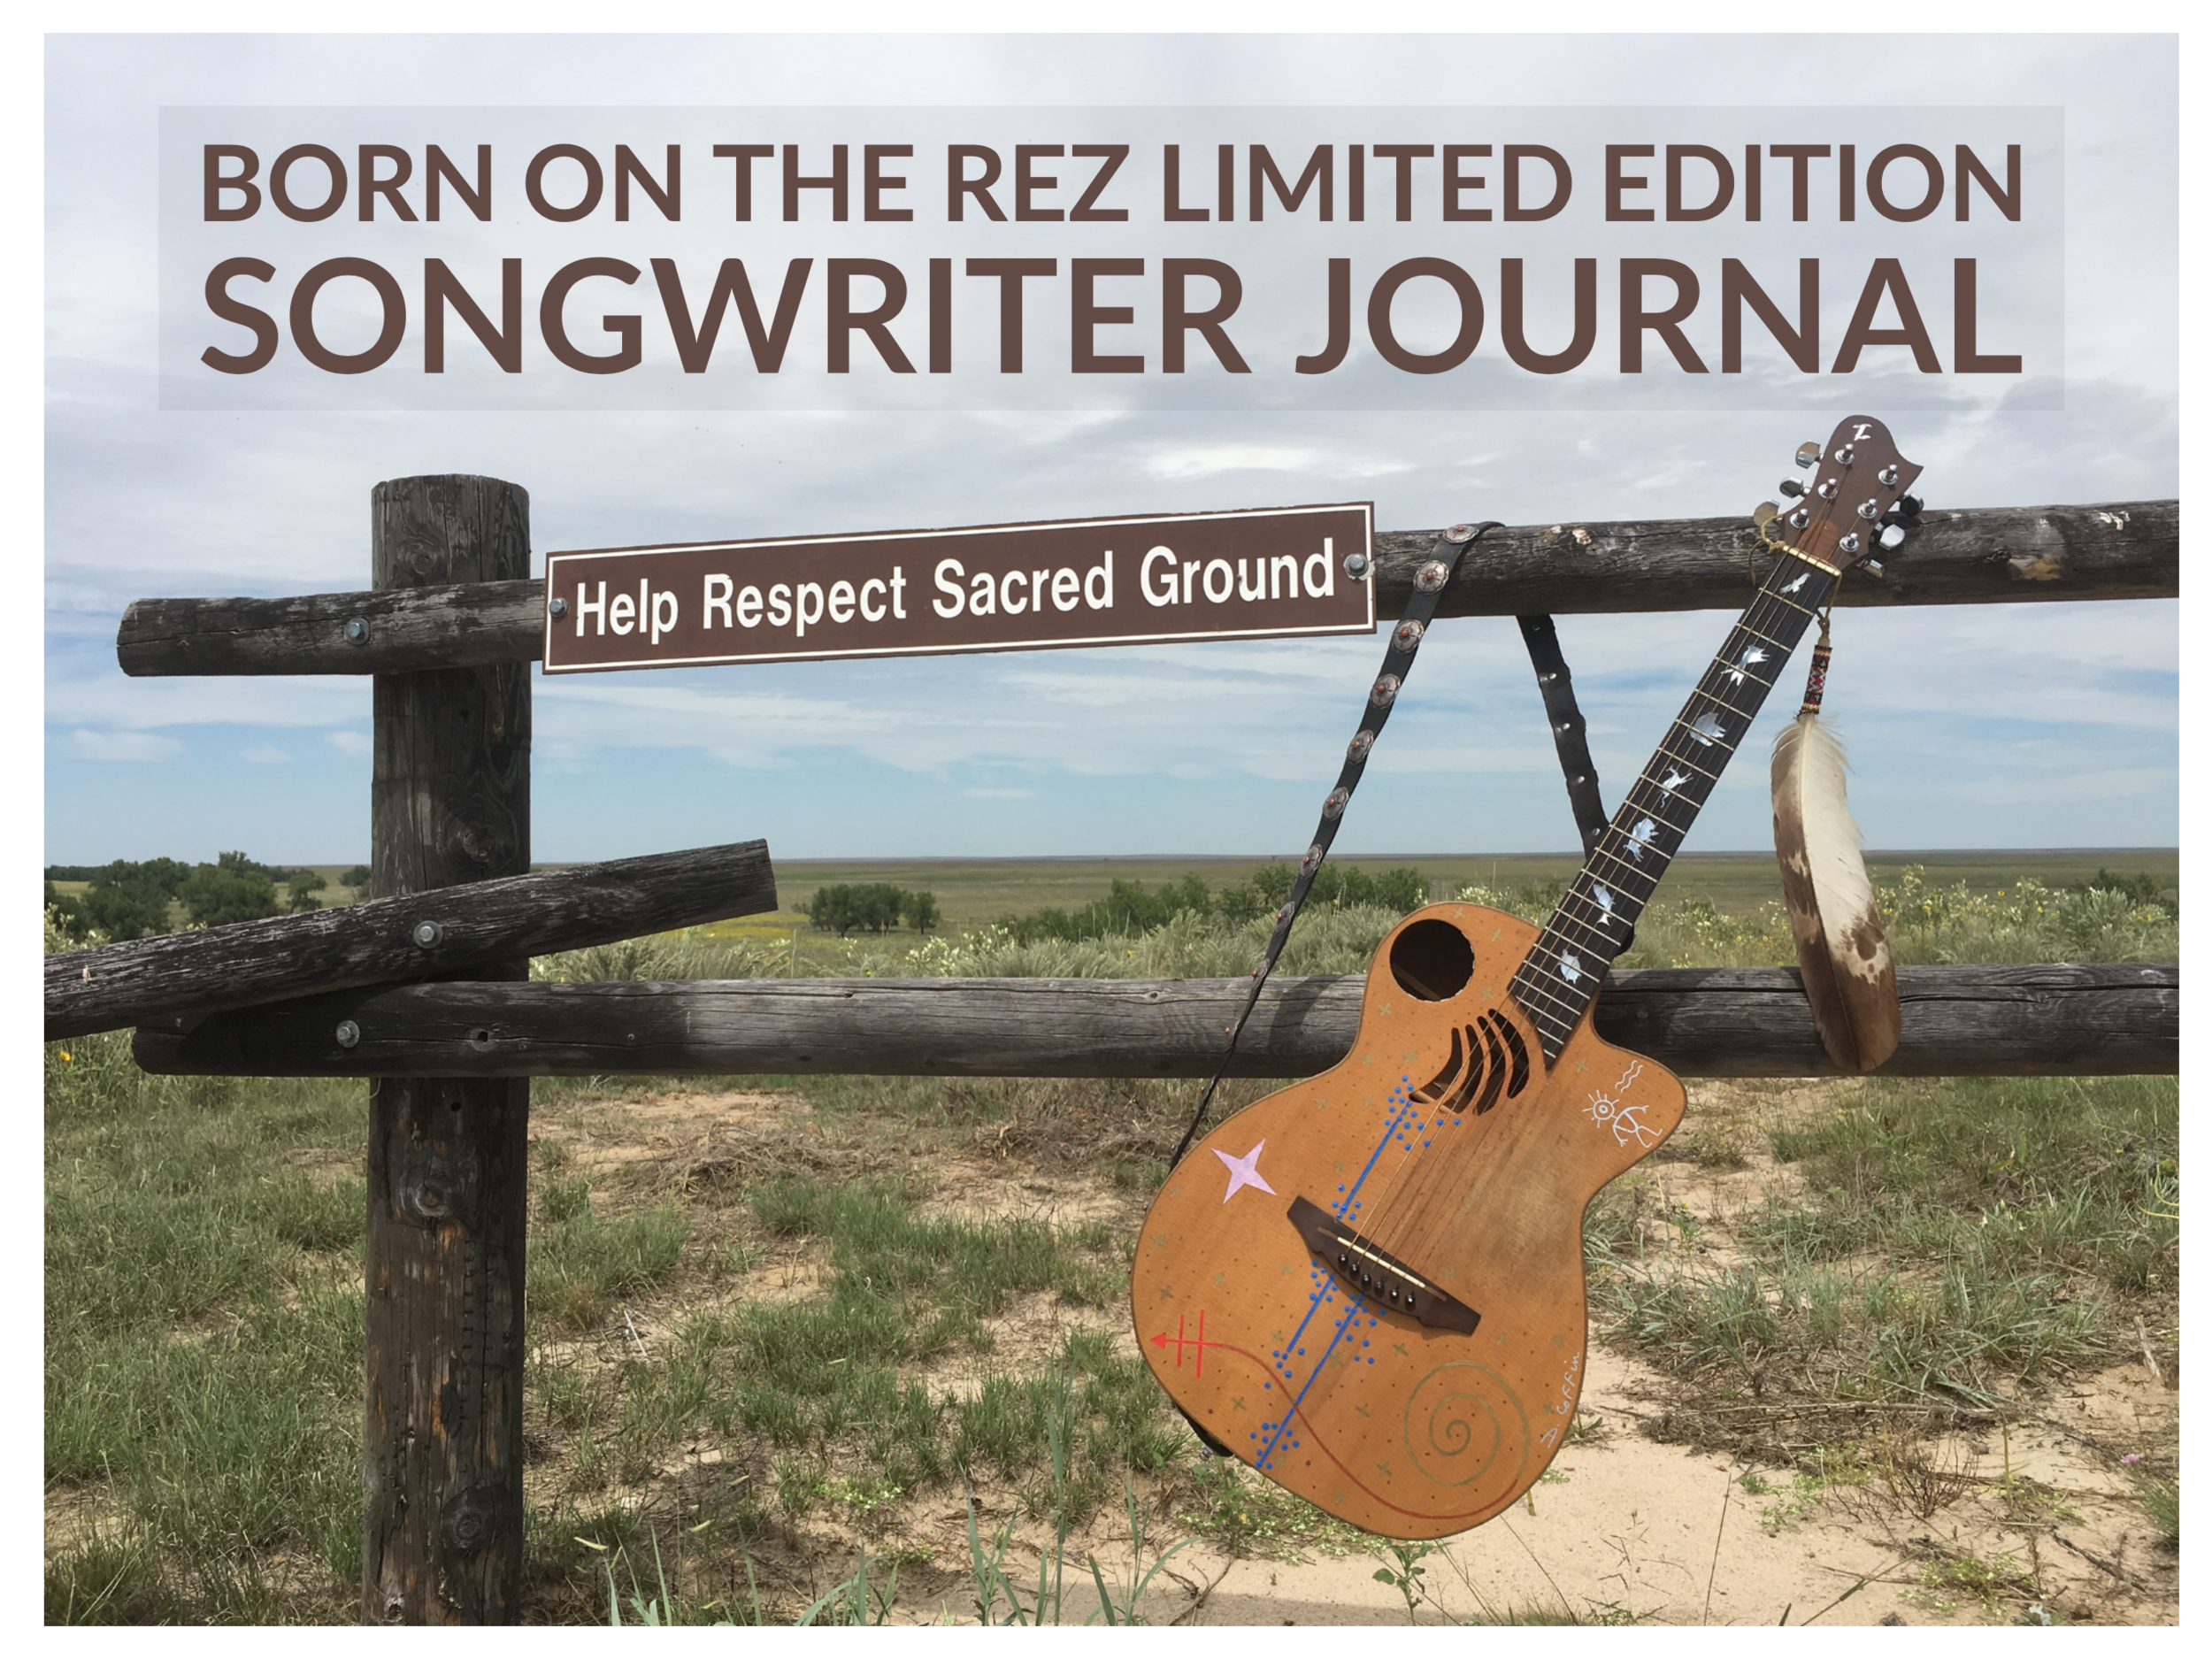 Born On The Rez Limited Edition Songwriter Journal.png